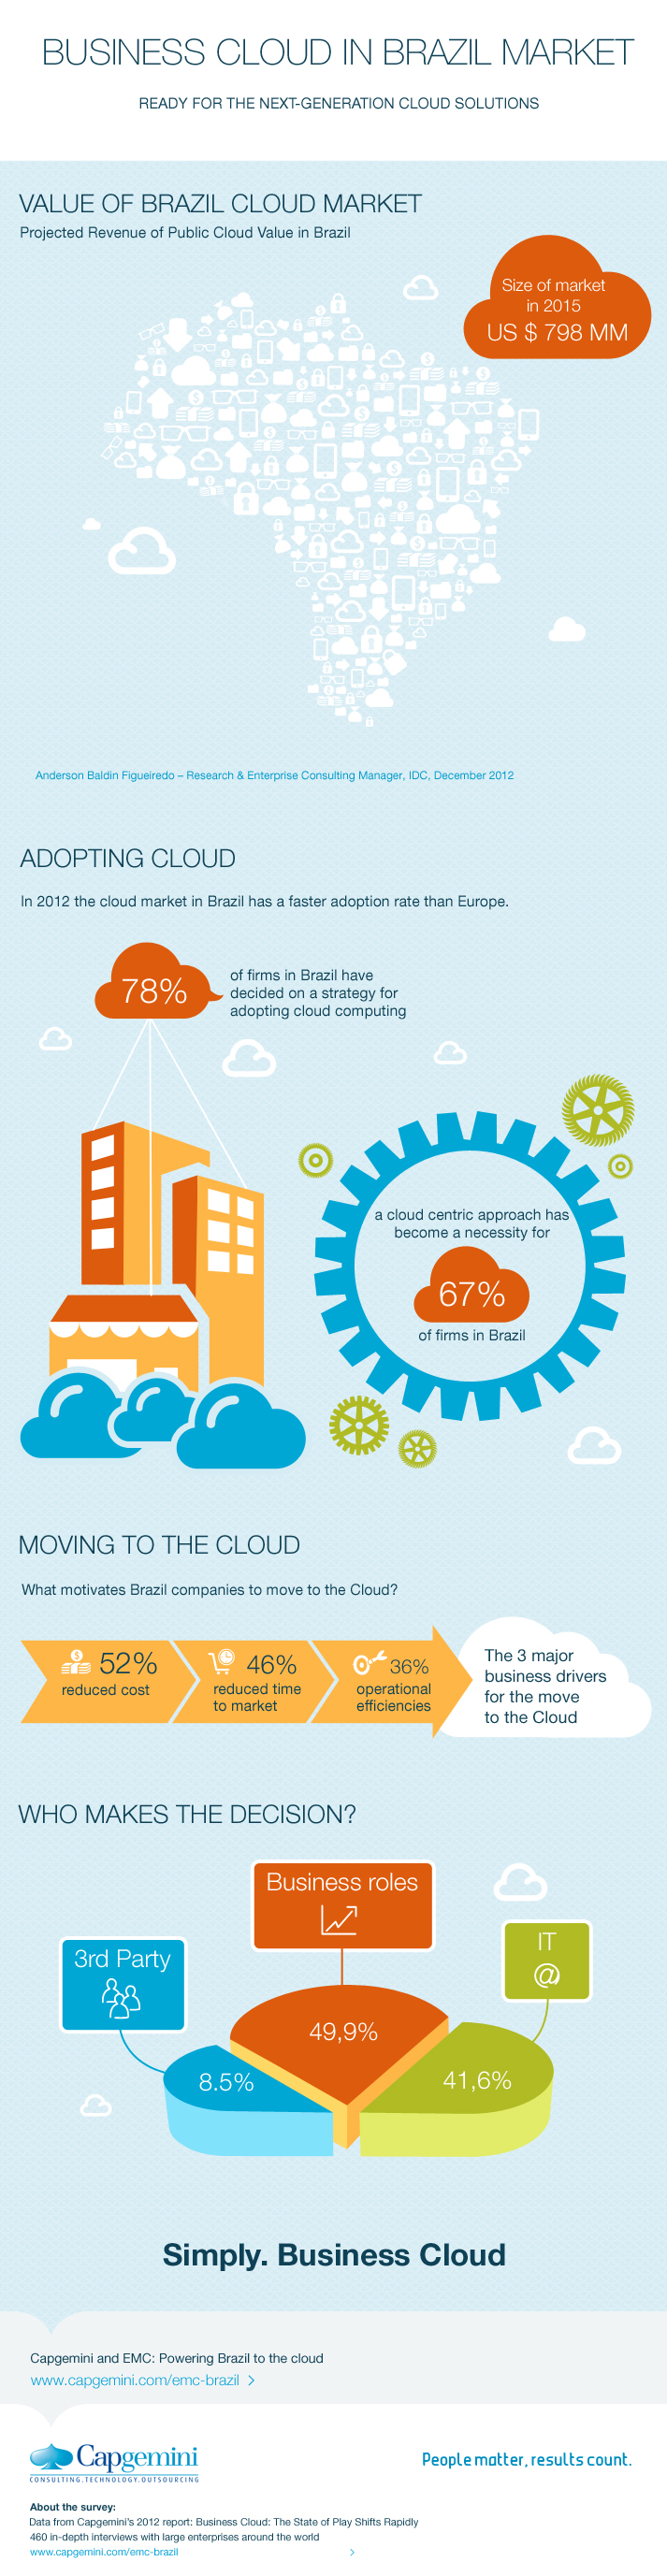 12. Business Cloud Market in Brazil